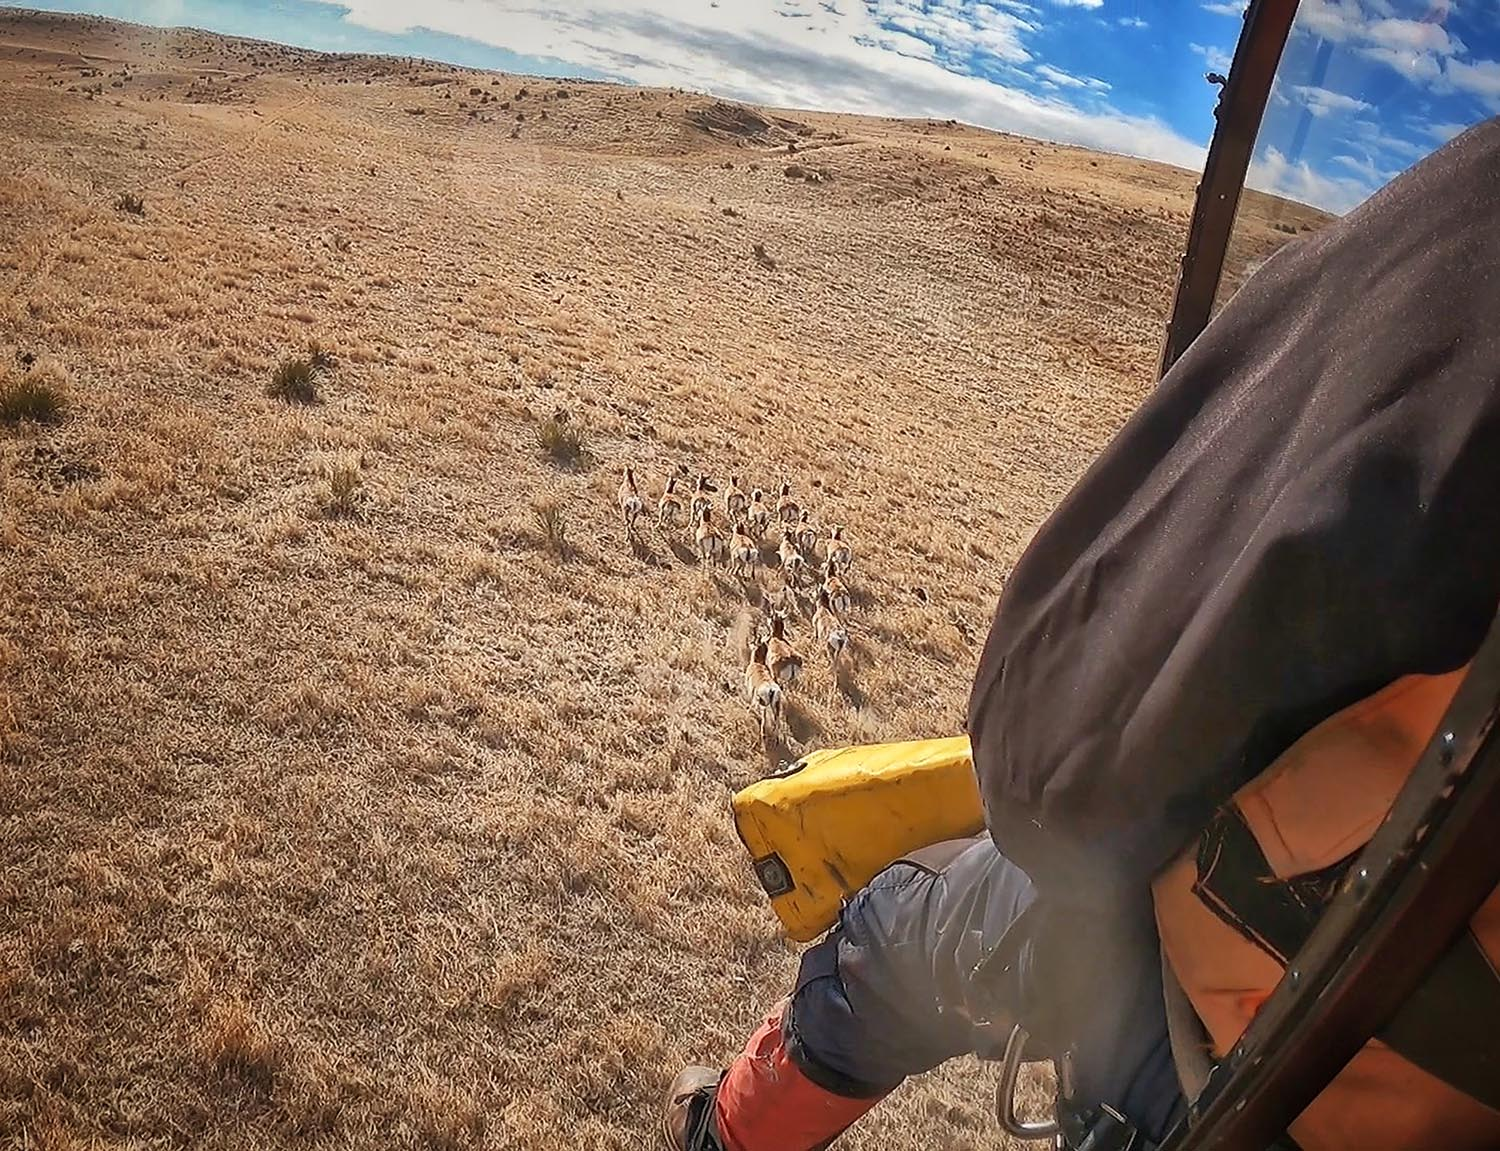 A still from a GoPro camera mounted in a helicopter shows a band of pronghorn running across western Nebraska rangeland. Earlier this year, researchers captured 80 pronghorn and placed GPS radio collars on them. The released pronghorn will be tracked over two years to provide fine-scale information about their survival and movement across the Nebraska Panhandle and anywhere else they roam. (Luke Meduna/Nebraska Game and Parks Commission)